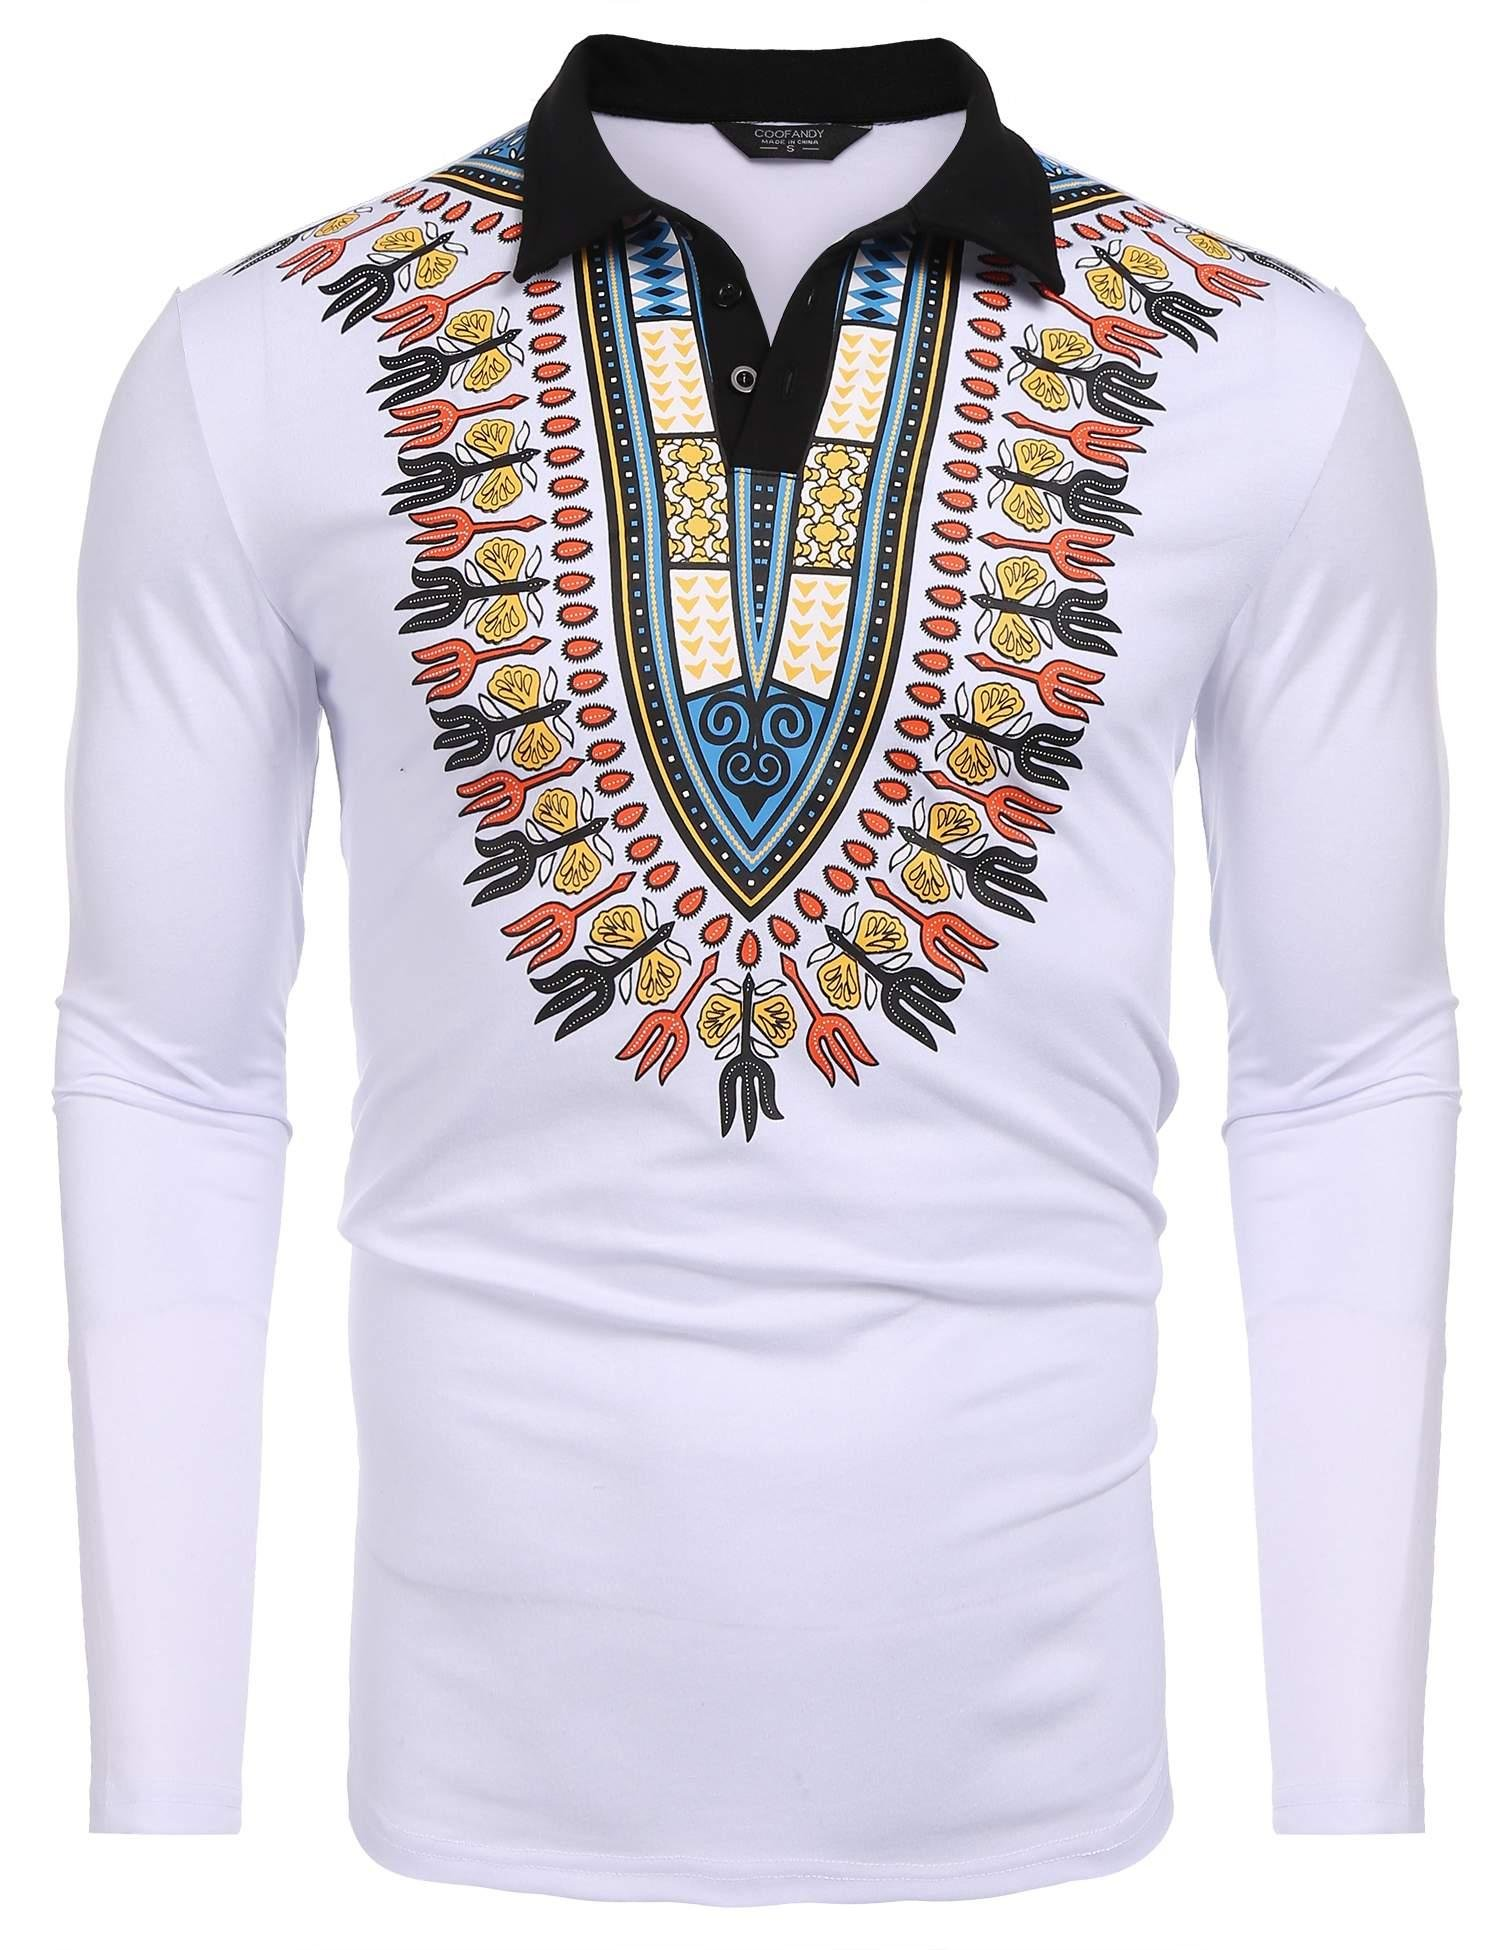 COOFANDY Mens African Print Shirt Bright Dashiki Slim Fit Long Sleeve Polo Shirt, White, XX-Large